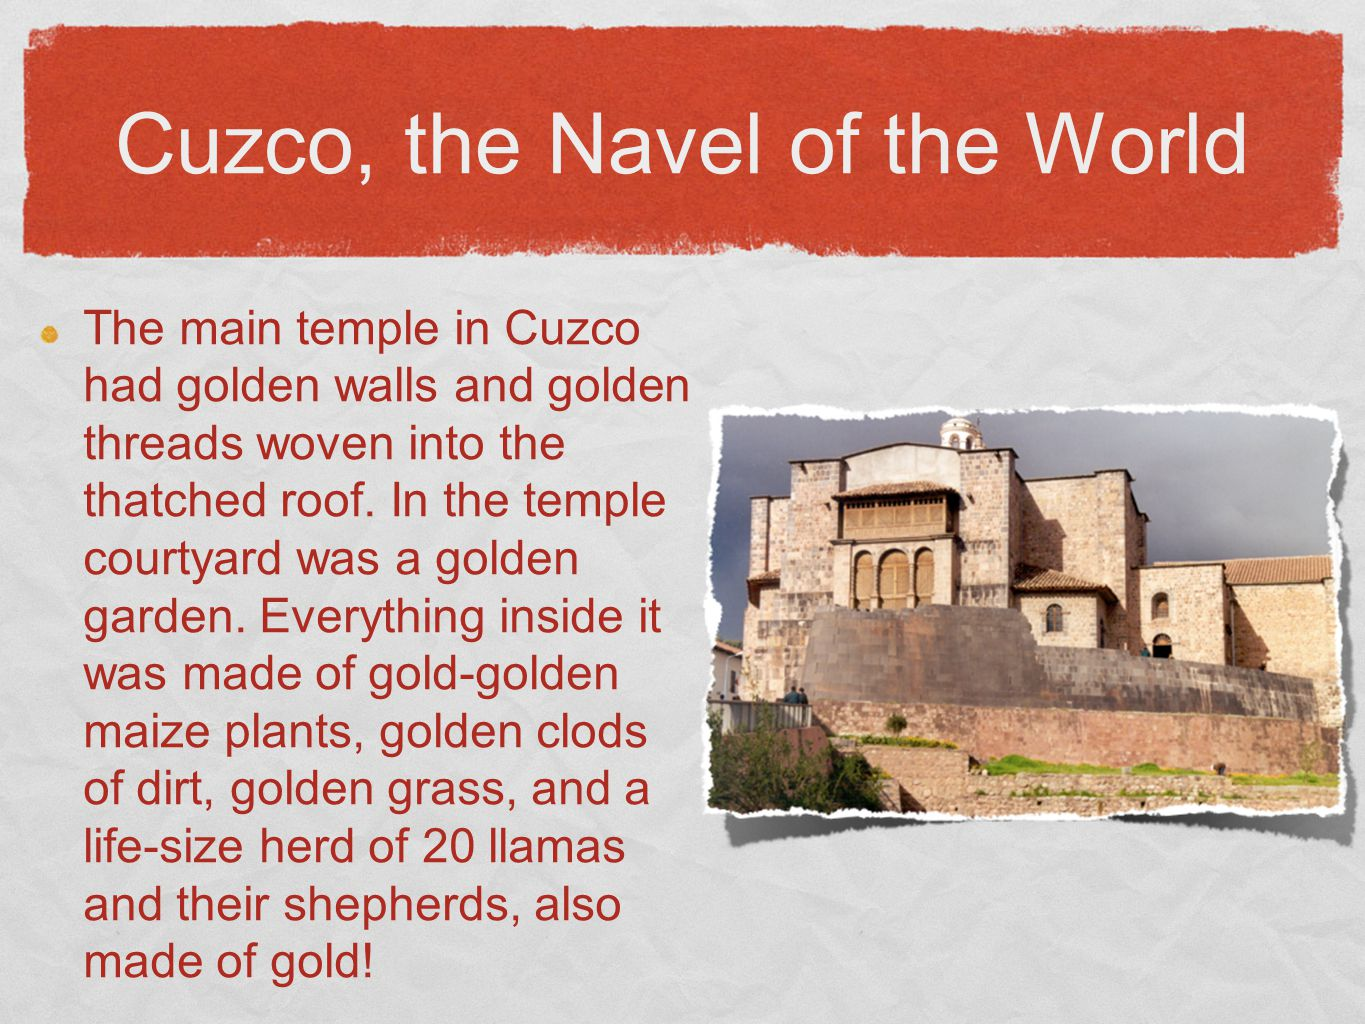 Cuzco, the Navel of the World